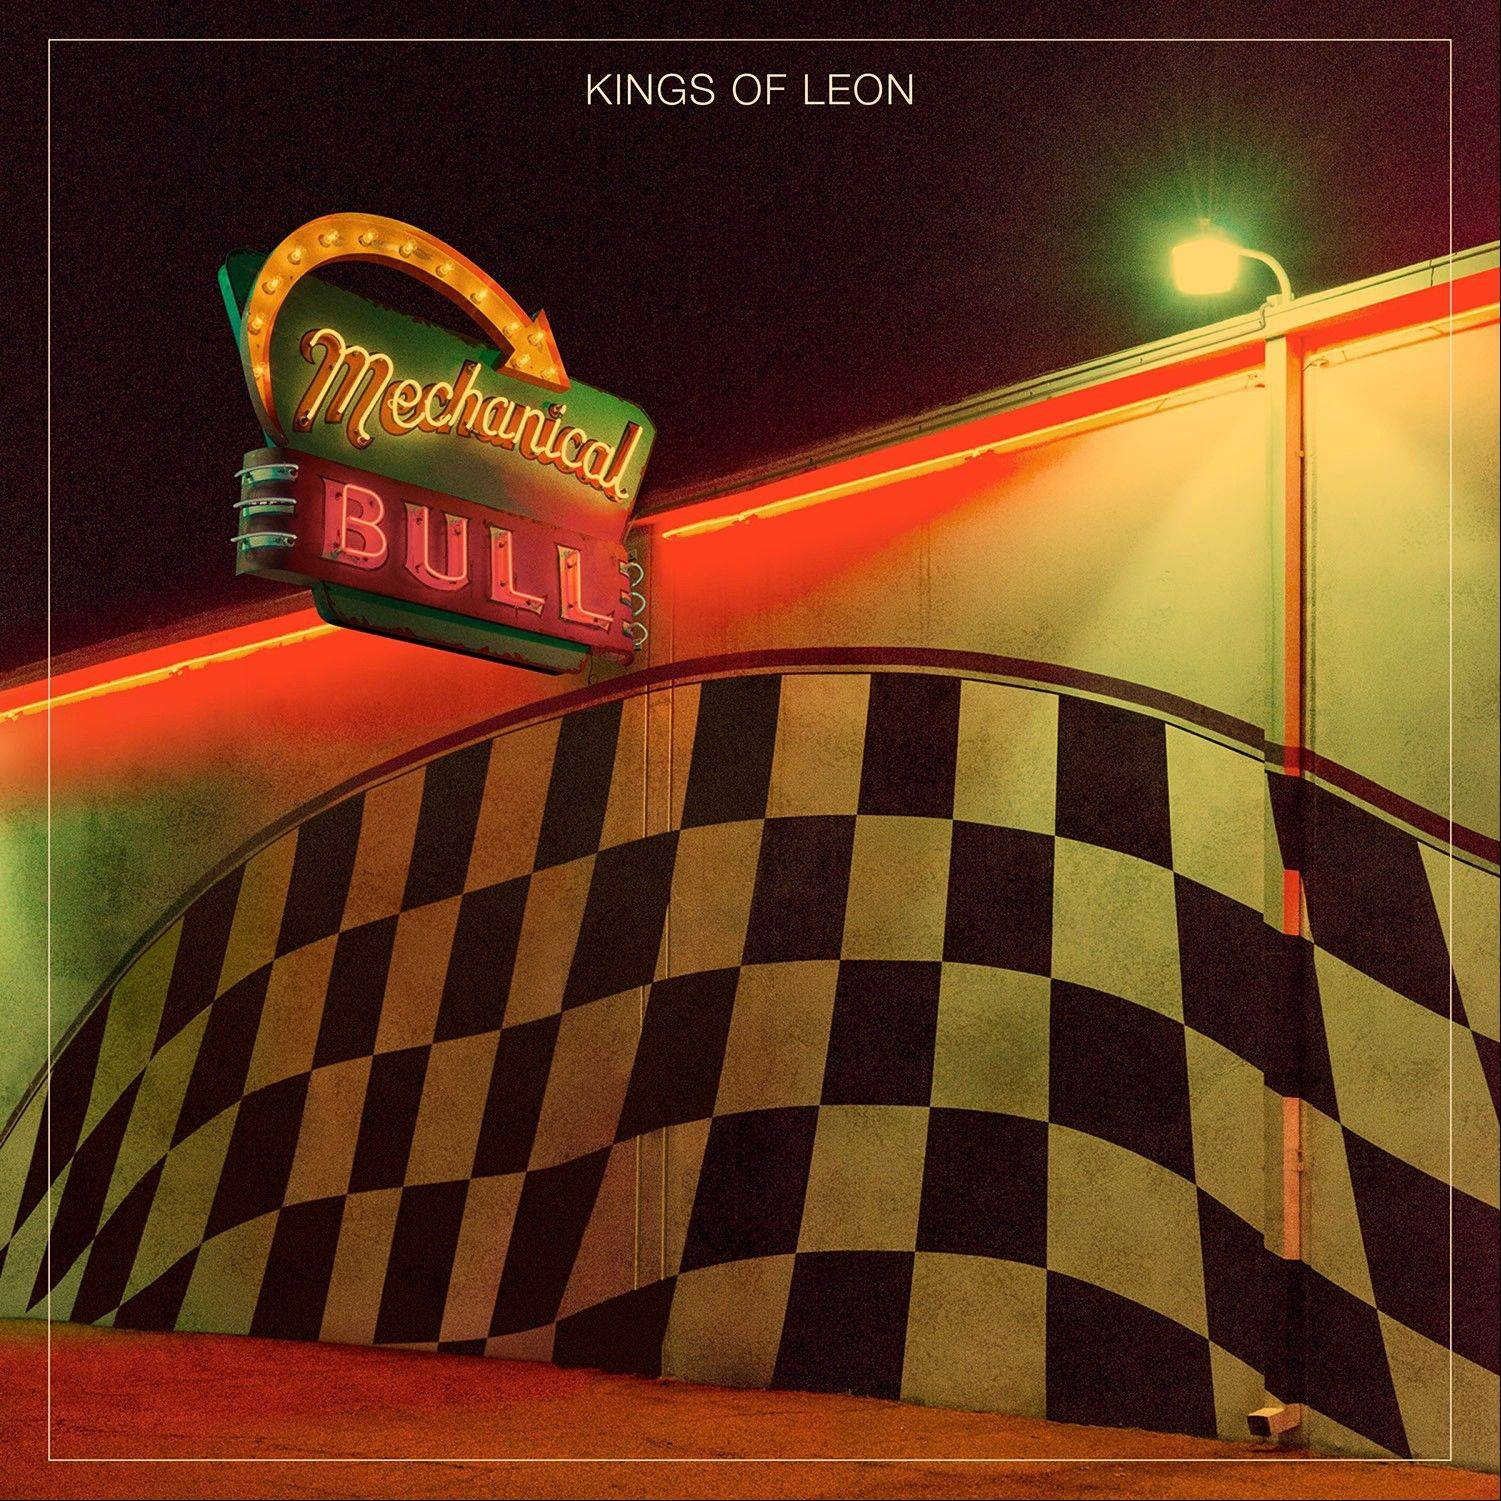 �Mechanical Bull,� the latest release by Kings of Leon